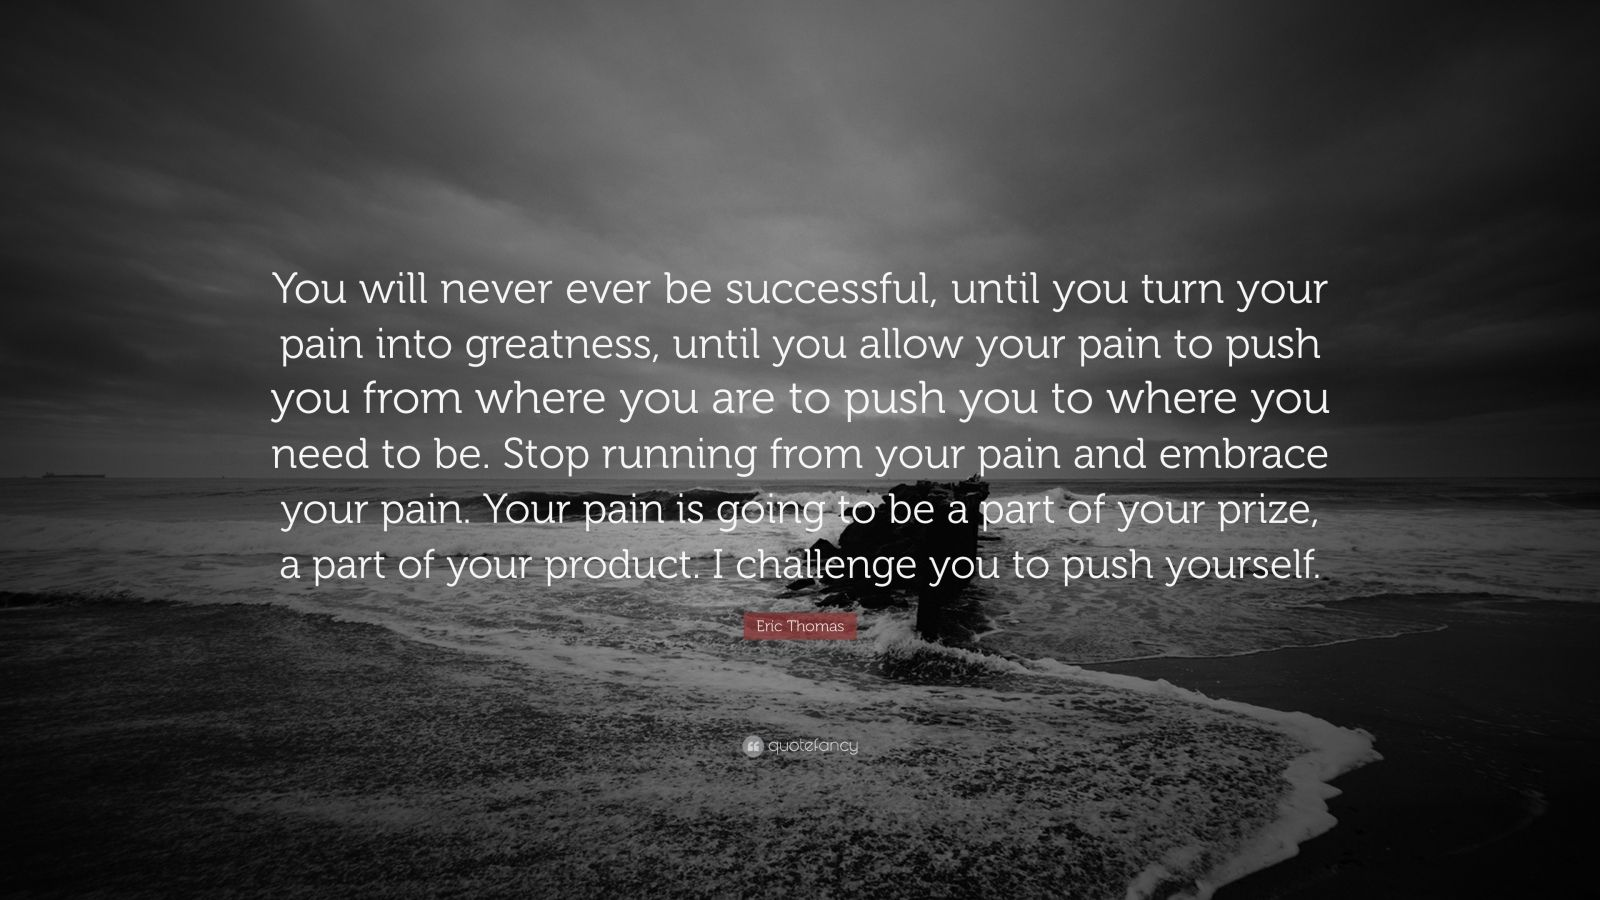 "Eric Thomas Quote: ""You will never ever be successful, until you turn your pain into greatness, until you allow your pain to push you from where you are to push you to where you need to be. Stop running from your pain and embrace your pain. Your pain is going to be a part of your prize, a part of your product. I challenge you to push yourself."""